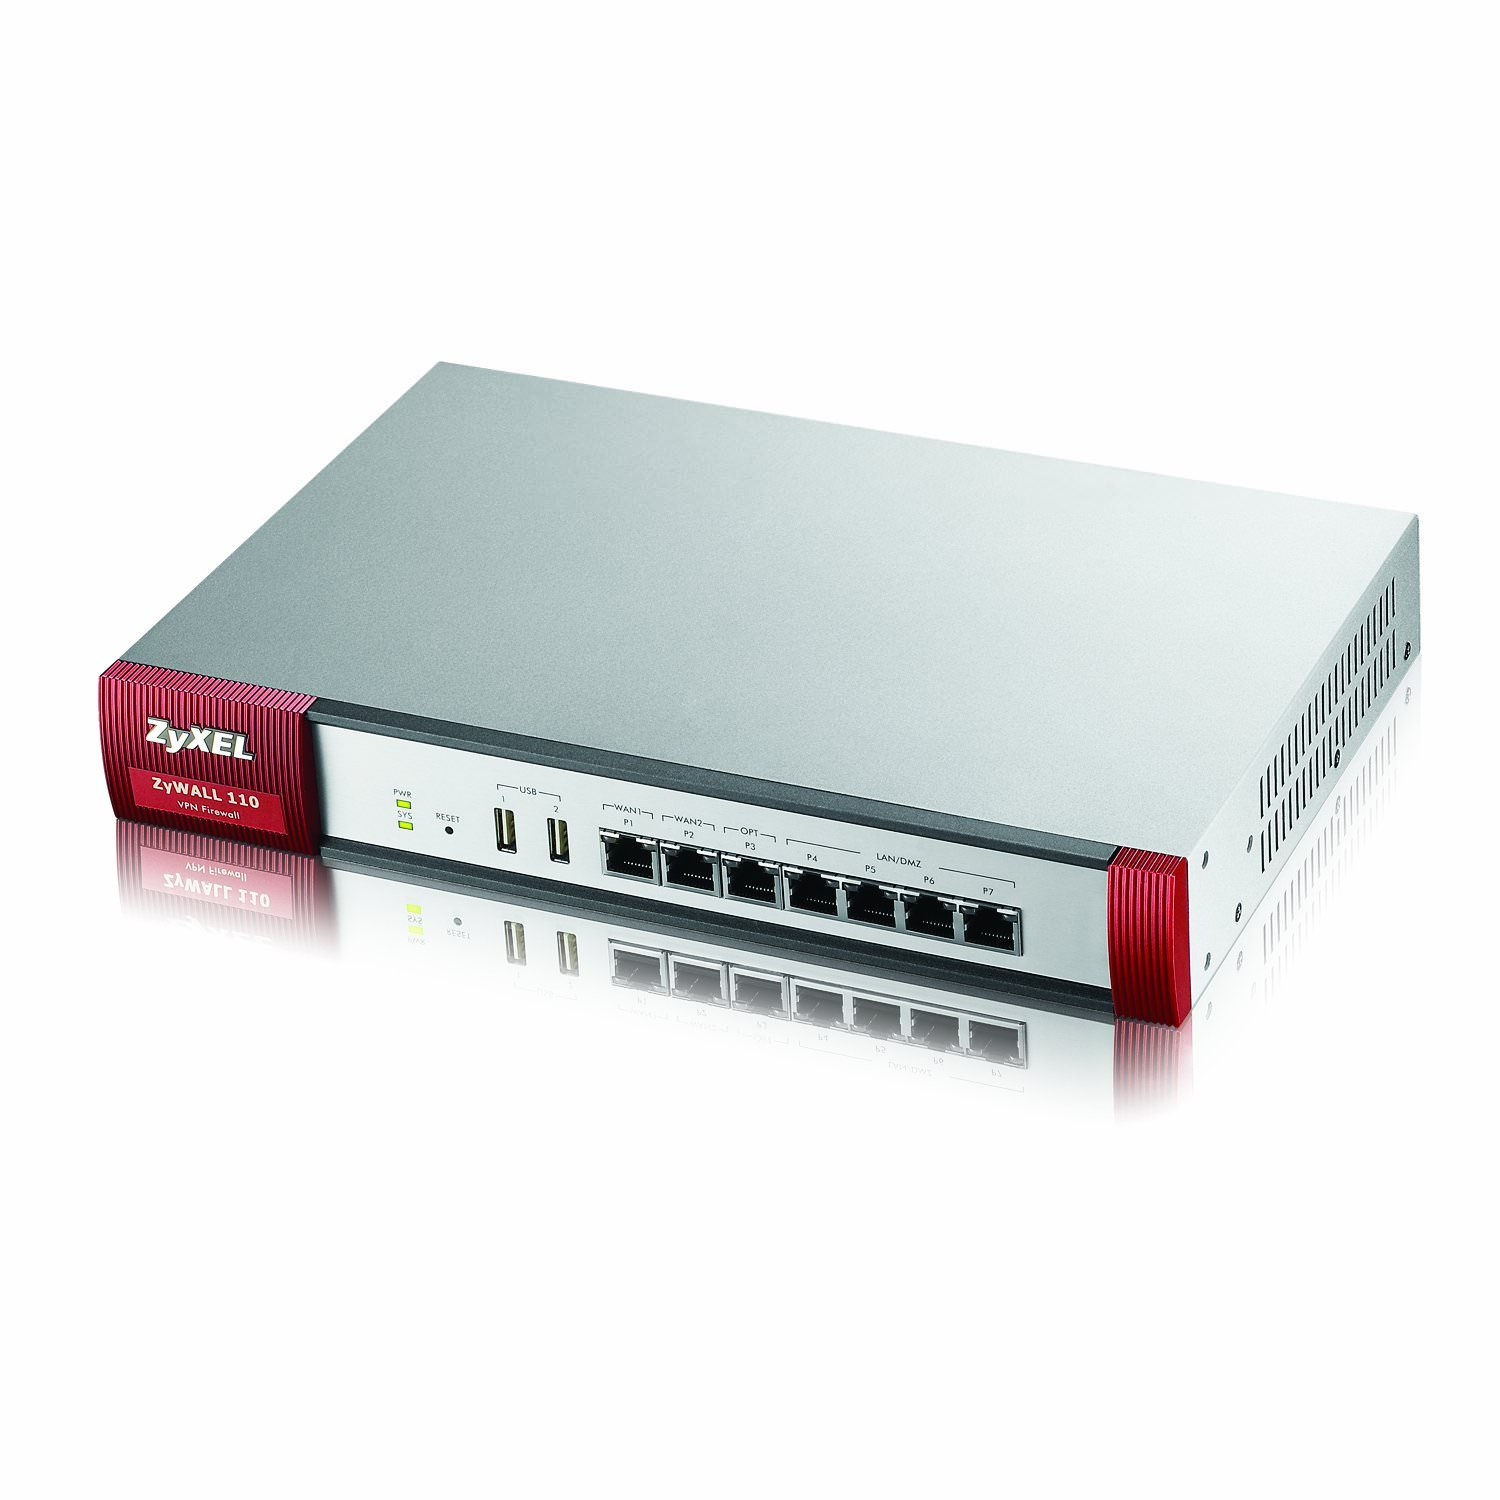 ZyXEL ZyWALL110 VPN Firewall by ZyXEL